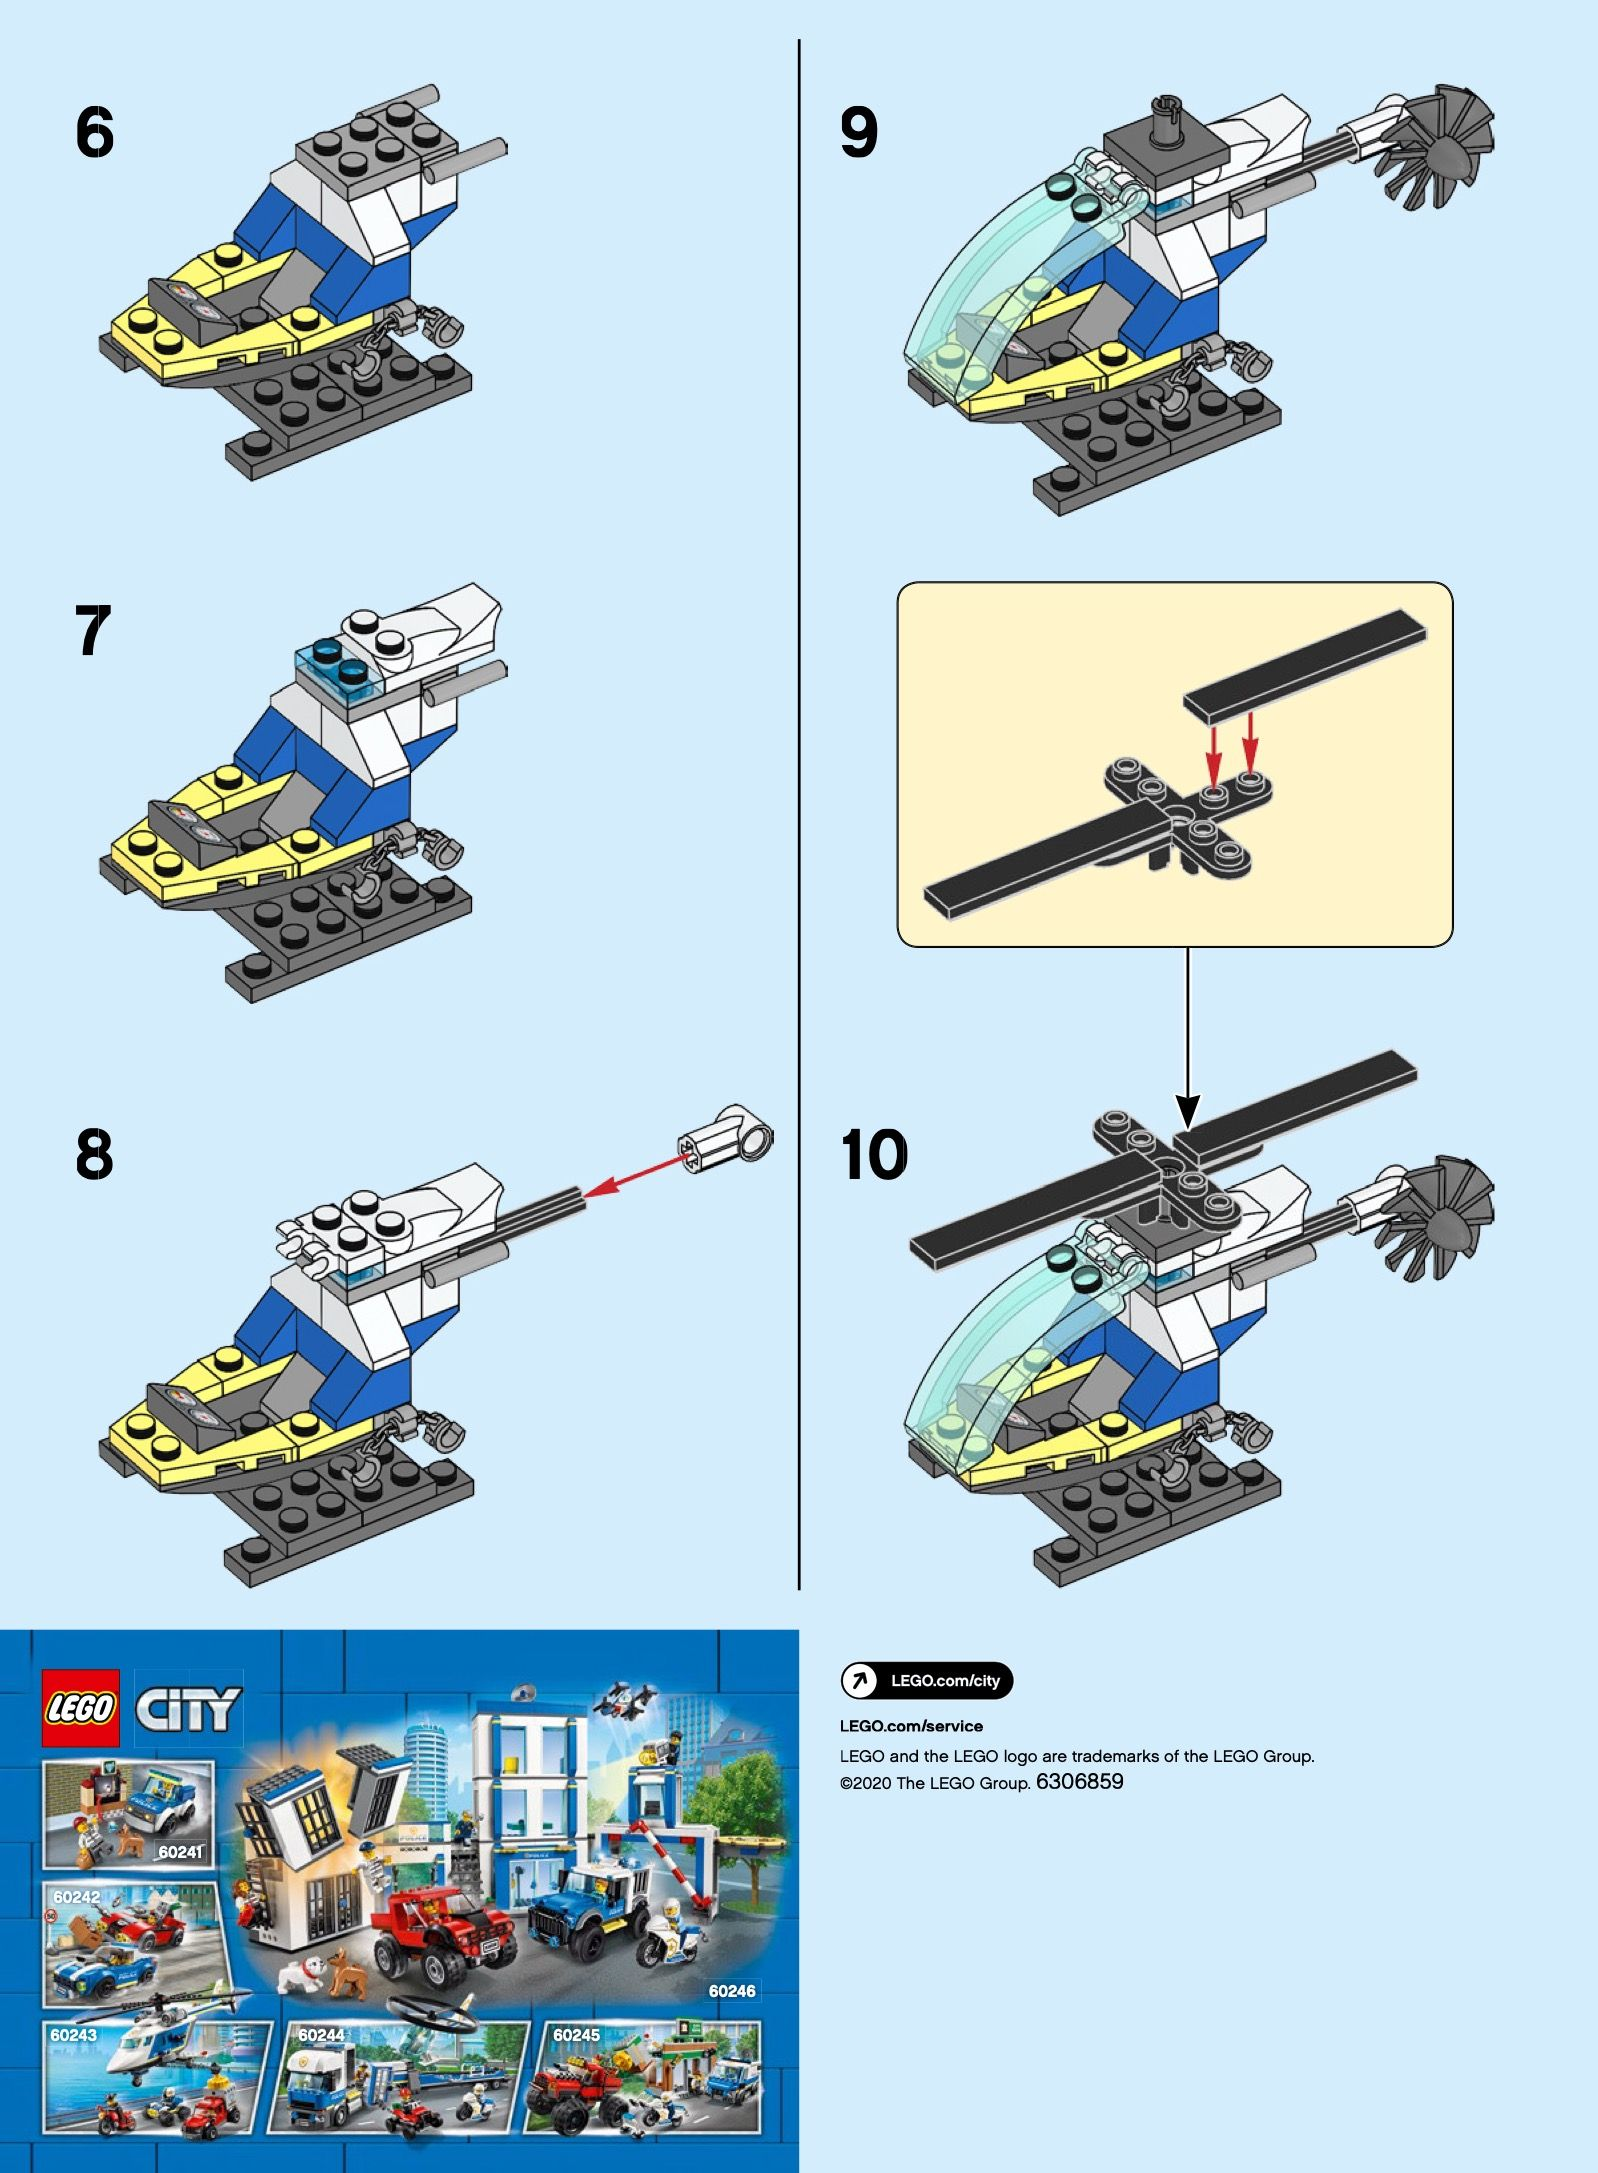 City Police Helicopter Lego 30367 In 2020 Lego City Police Helicopter Lego City Police Lego City